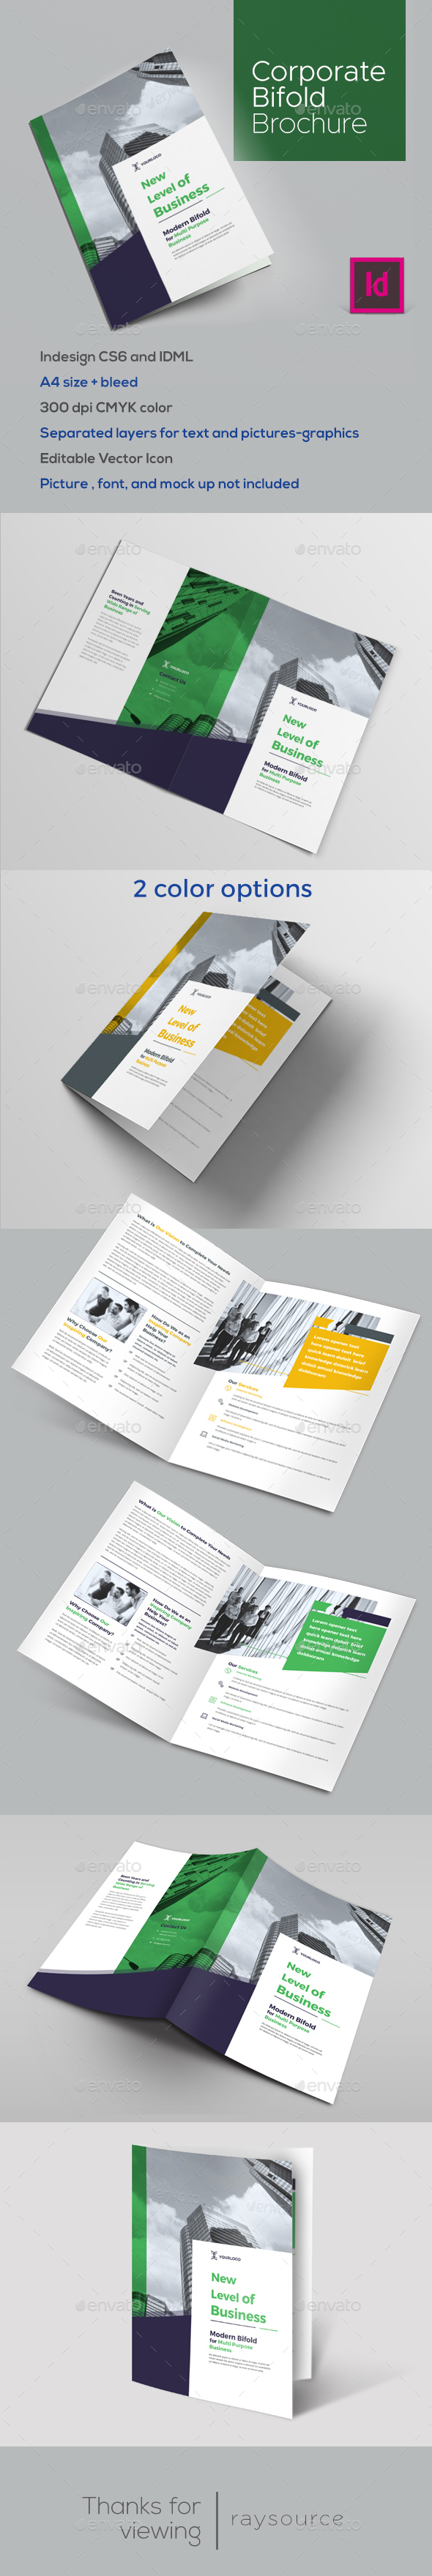 GraphicRiver Corporate Bifold Brochure 21190312